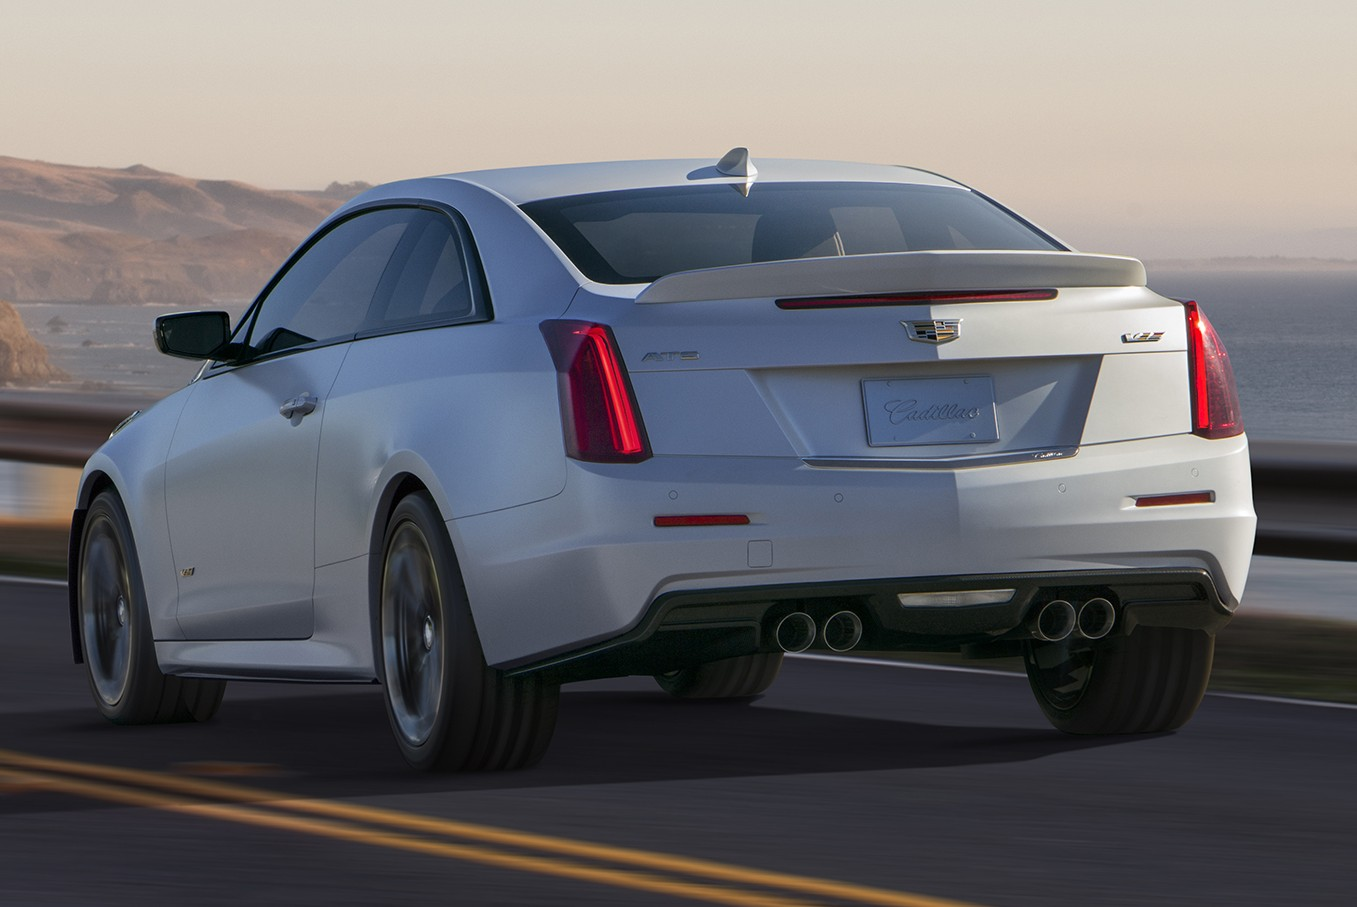 Cadillac Ats Coupe >> Cadillac ATS-V – M3/M4 fighter with 455 hp biturbo V6 Paul Tan - Image 292966